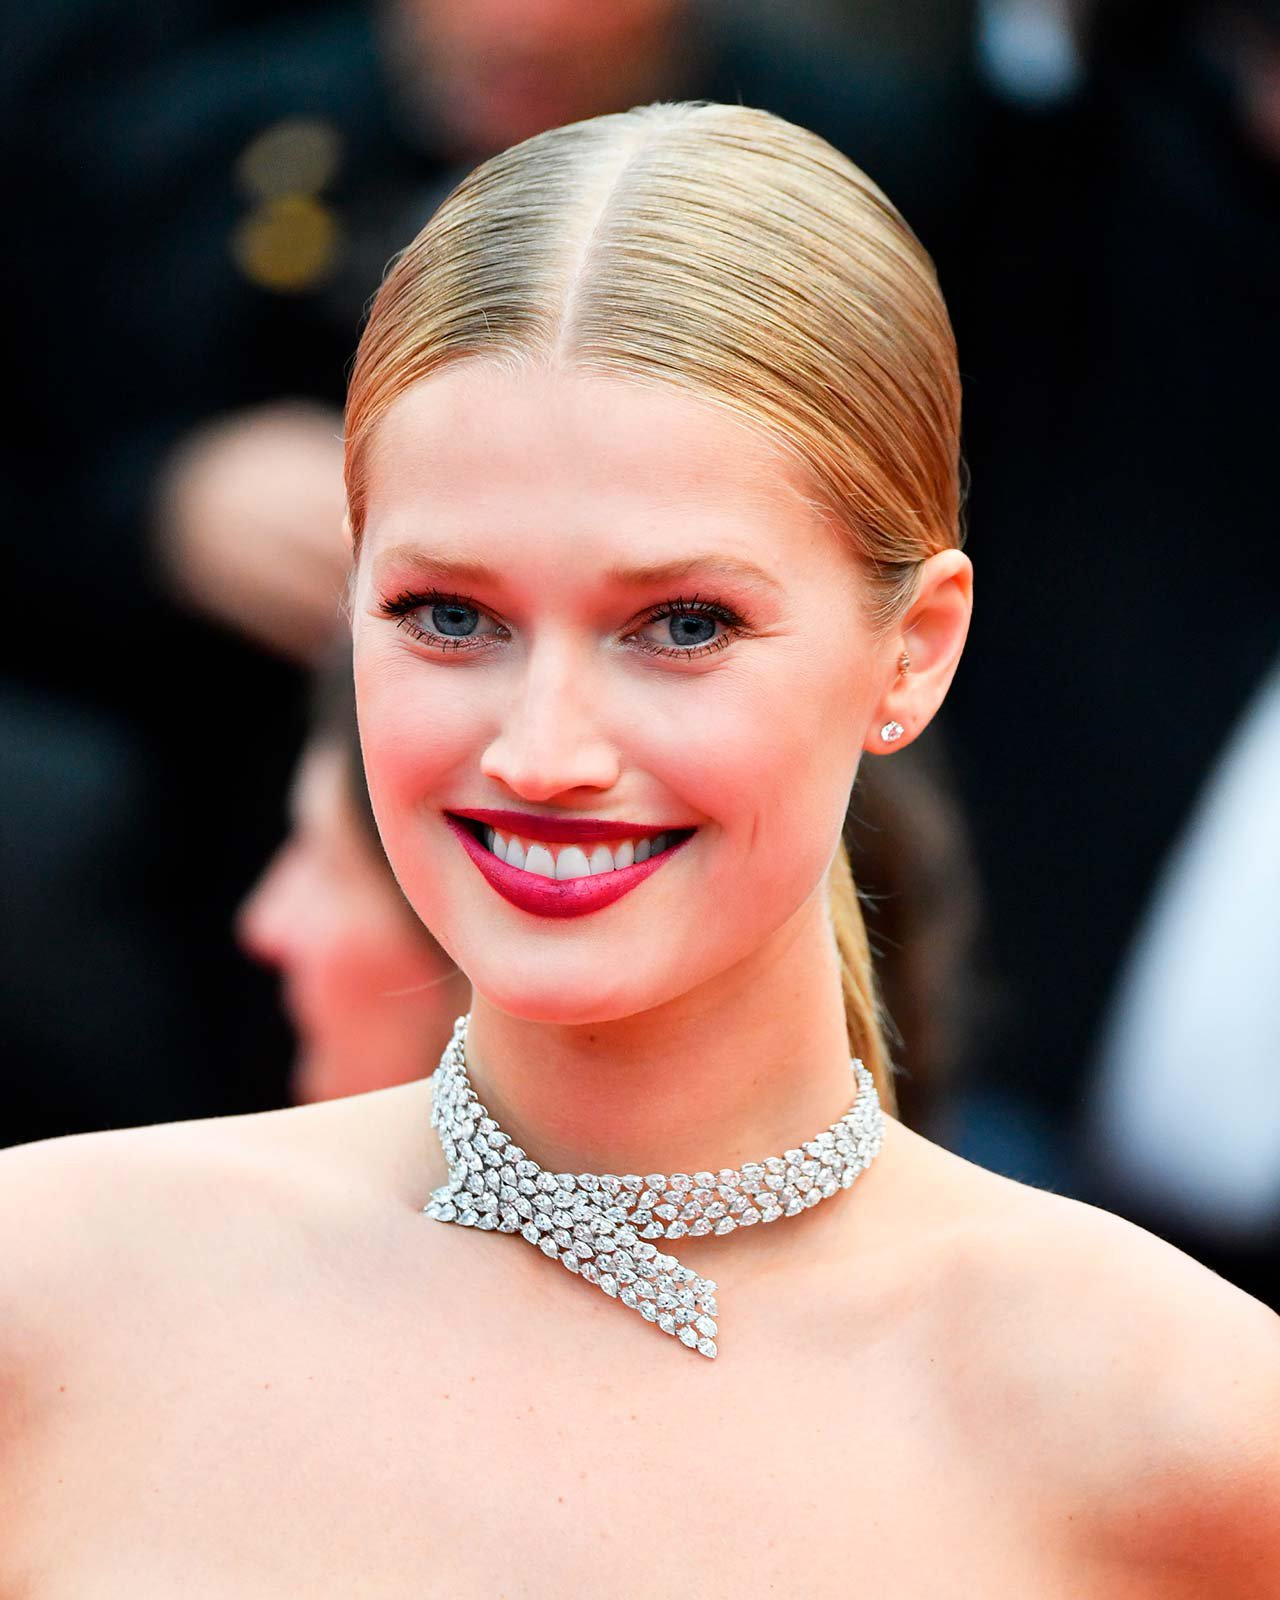 Celebrity Toni Garrn nudes (75 foto and video), Tits, Cleavage, Twitter, legs 2015